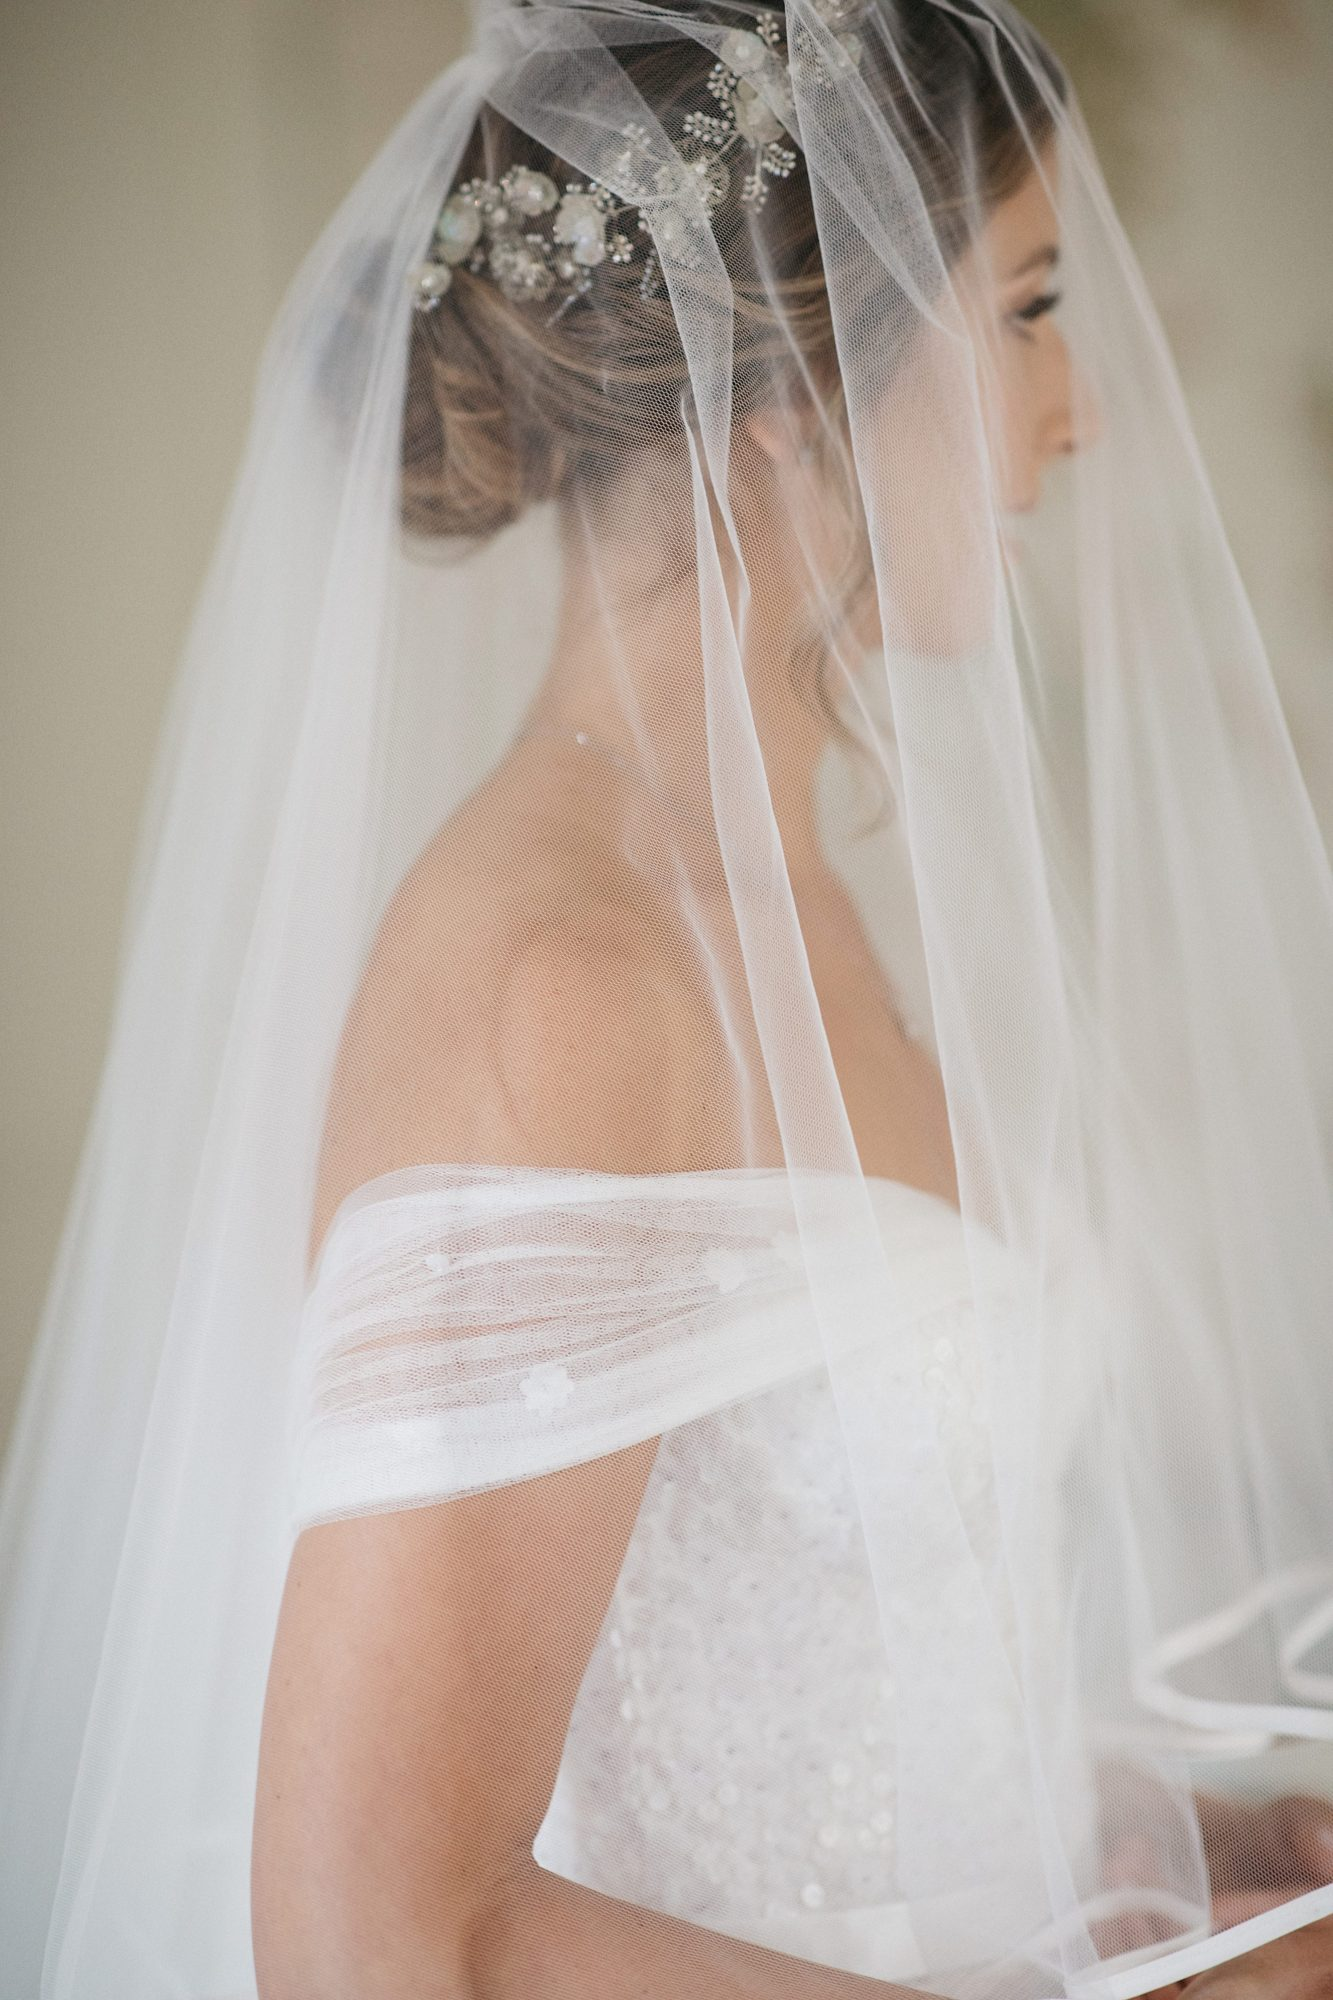 laurie lee wedding bride veil and hair with dress details